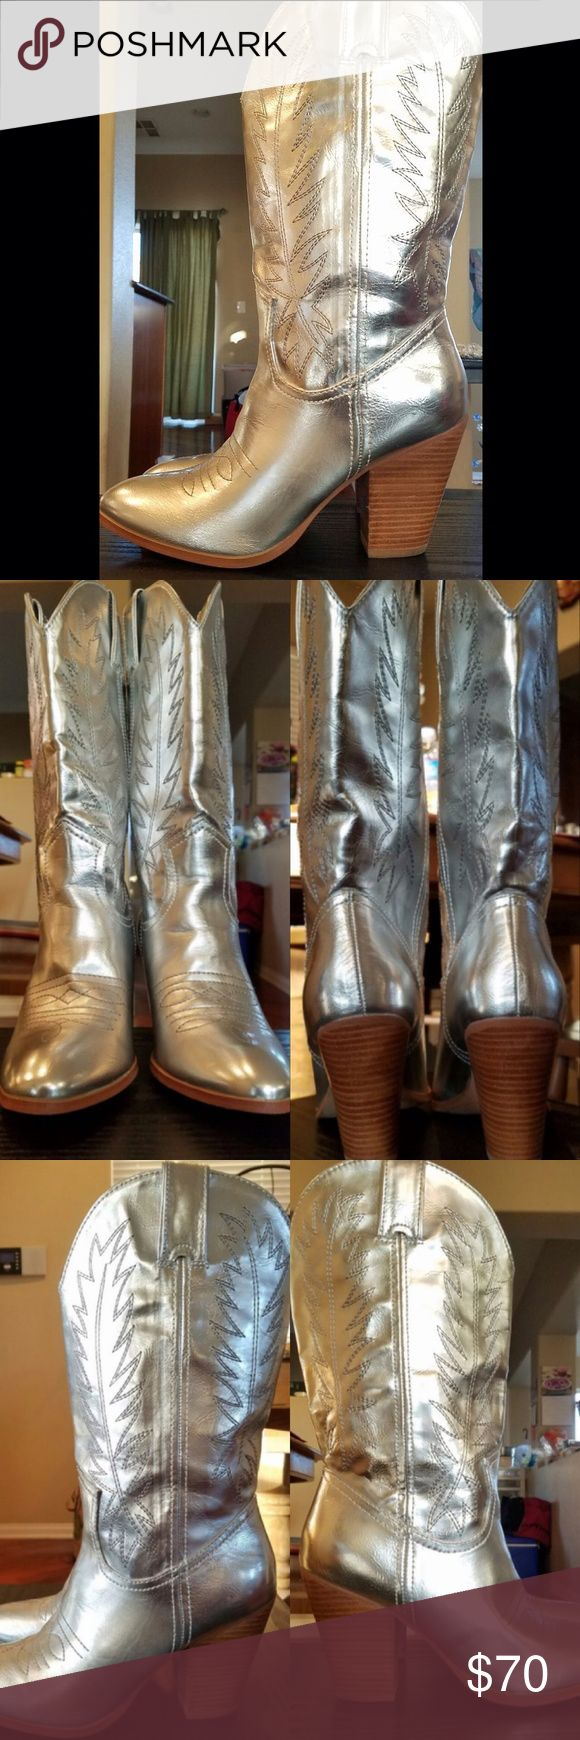 """✨ Make offer ✨ 